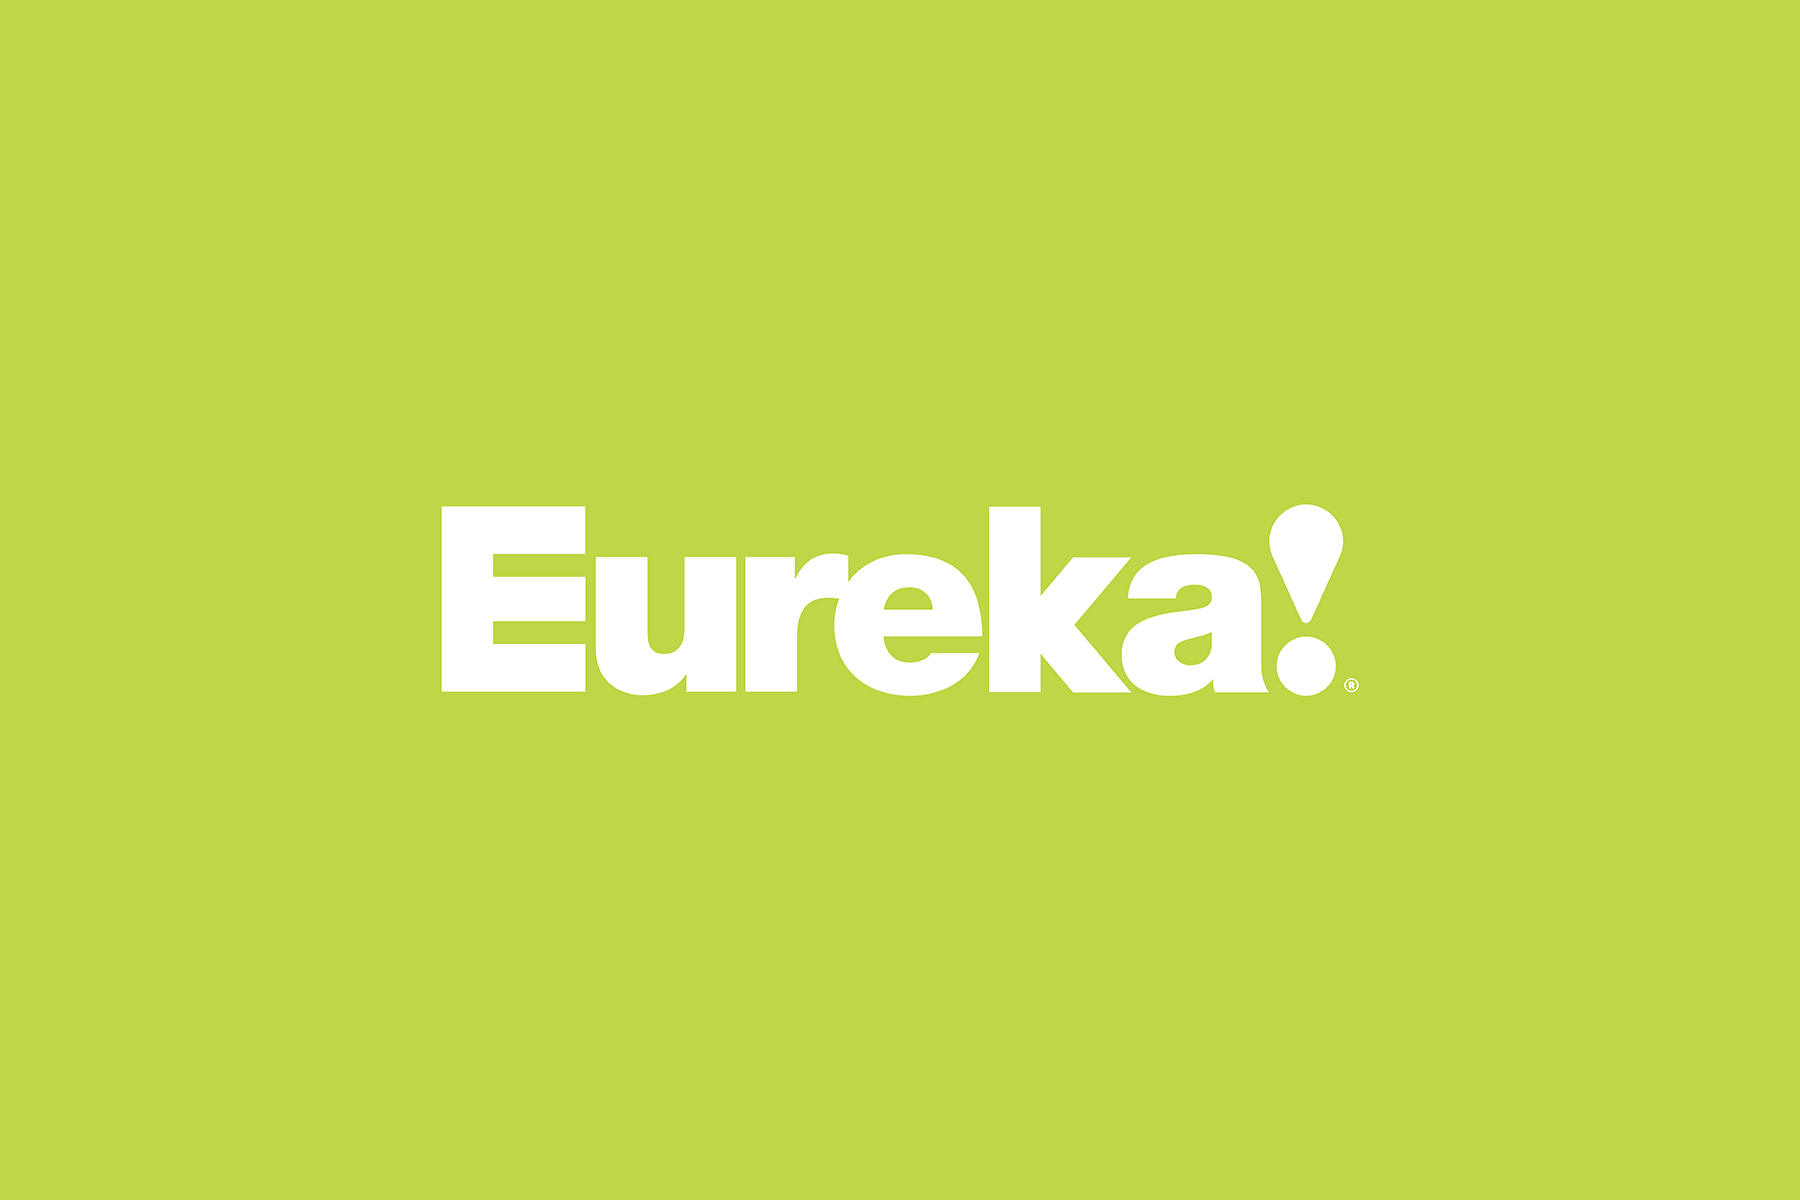 Eureka! Brand Evolution